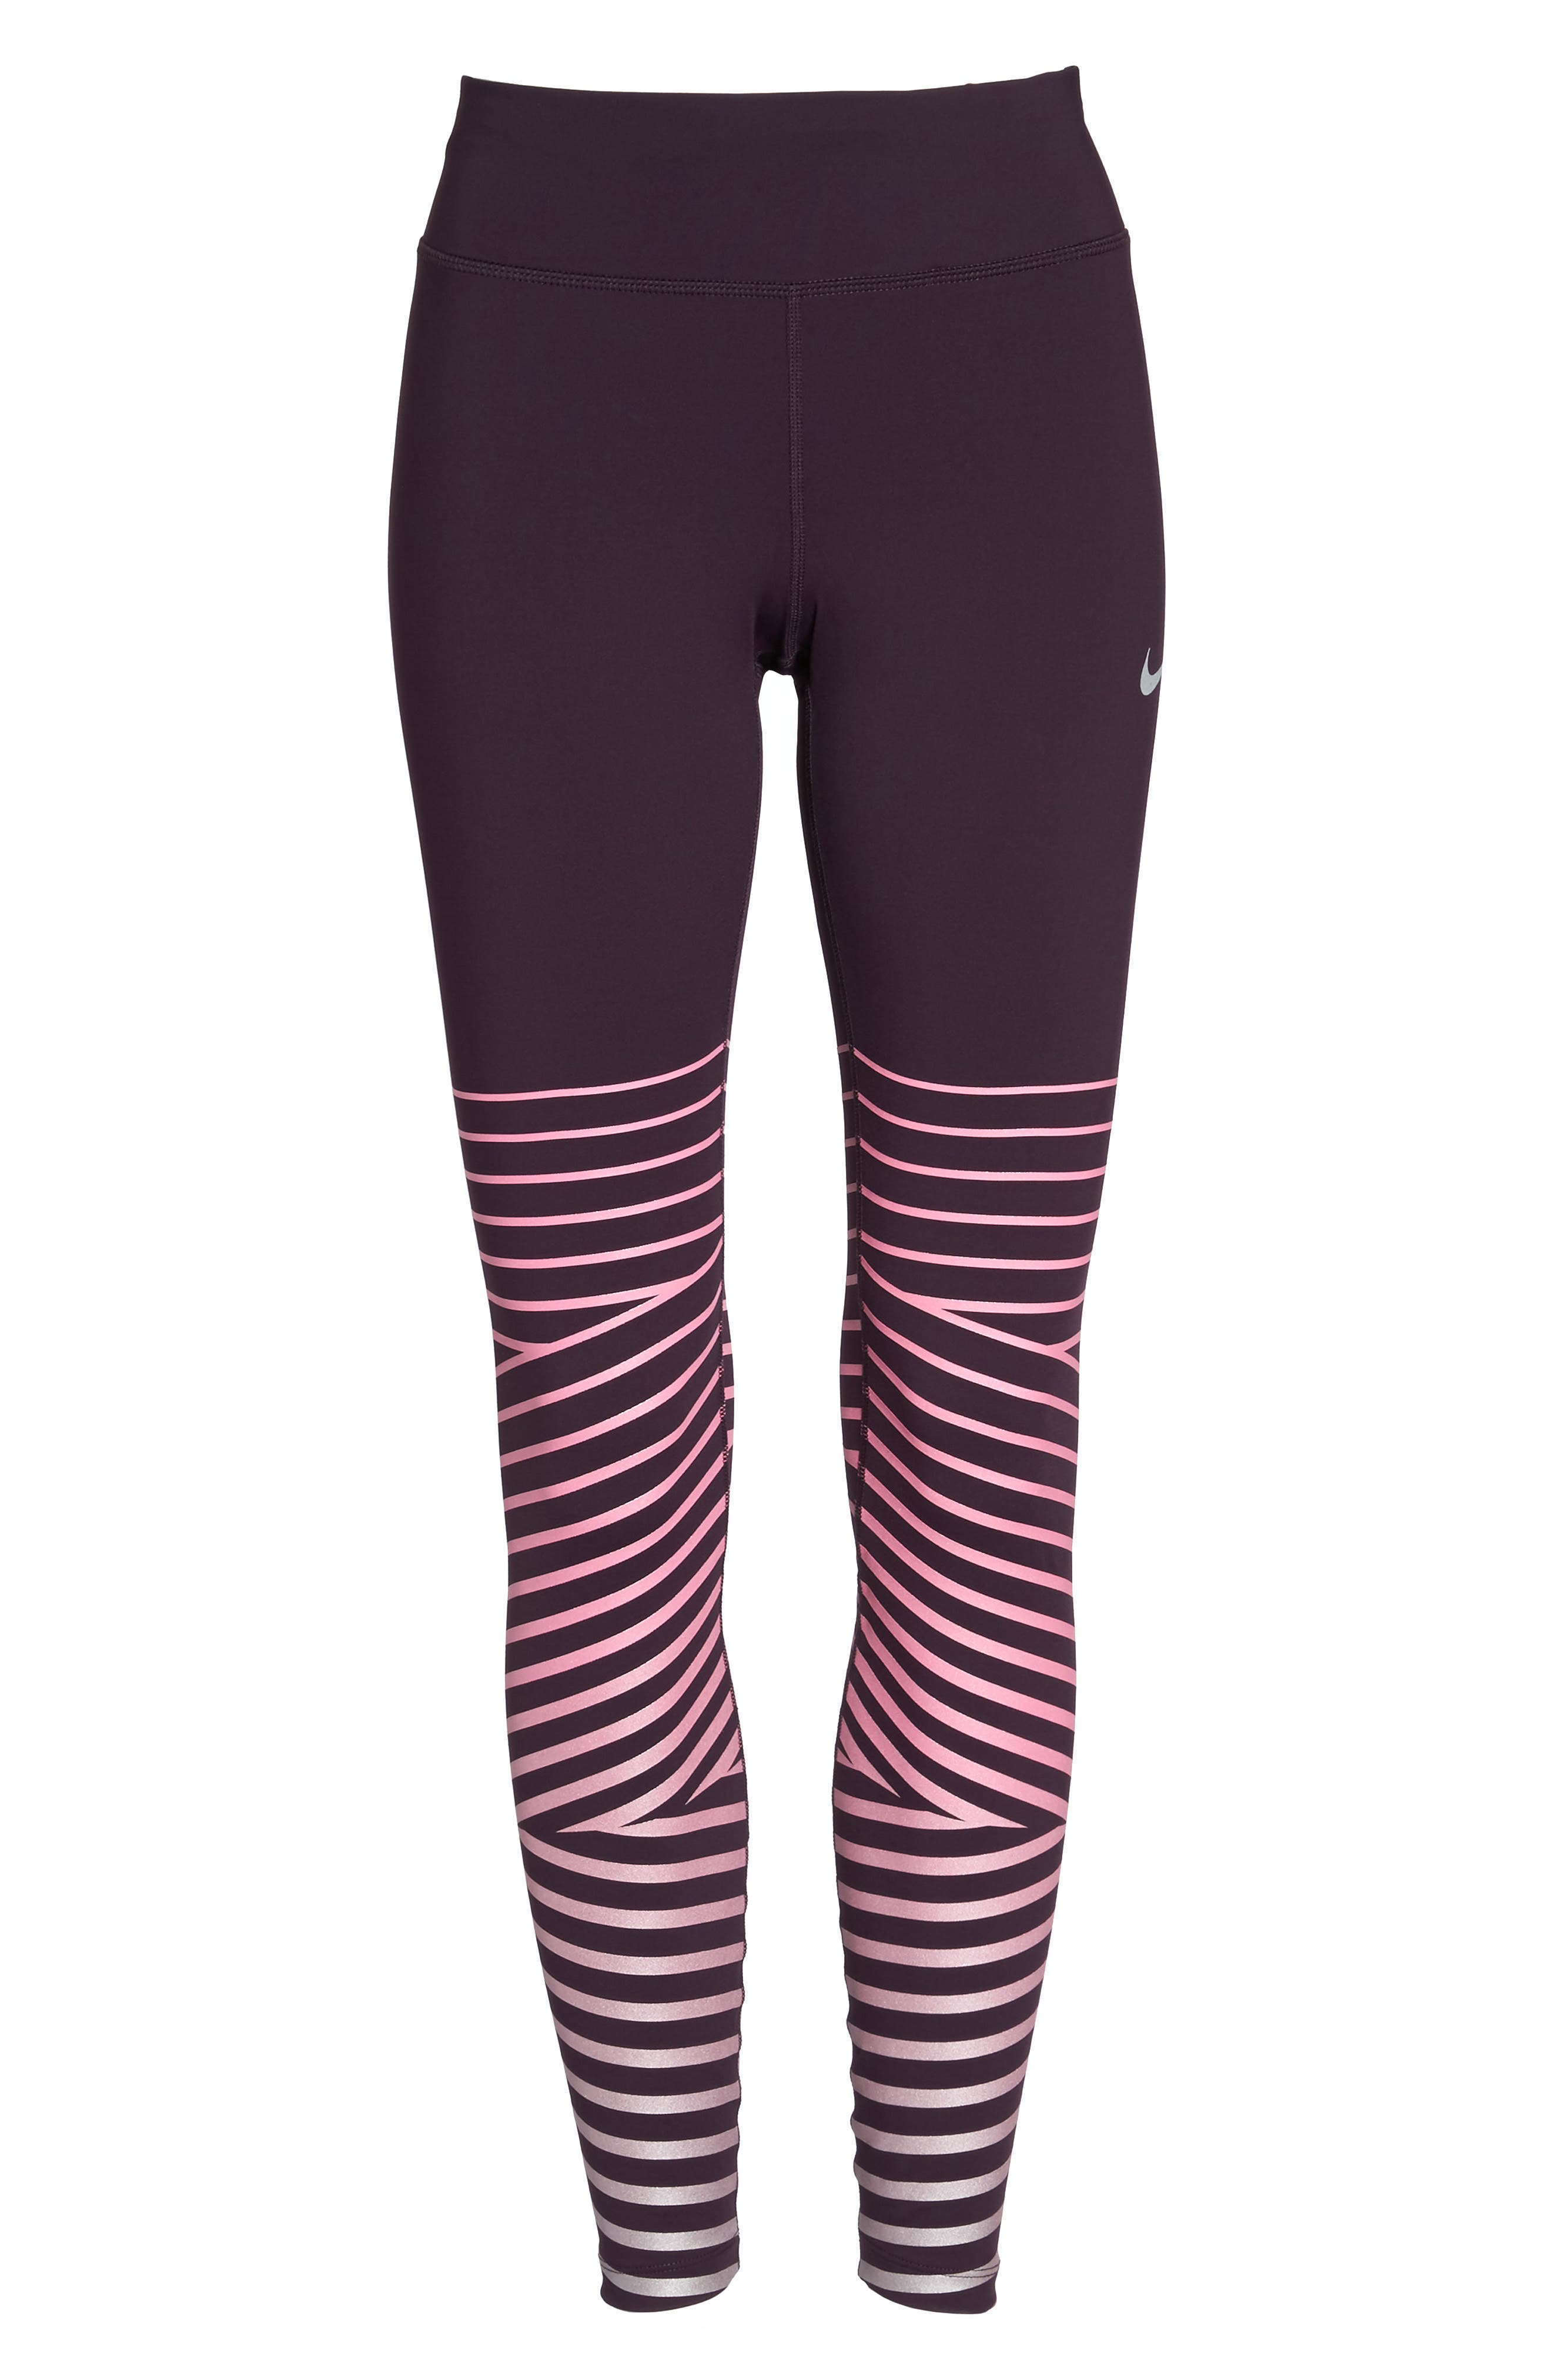 Power Epic Lux Flash Running Tights,                             Alternate thumbnail 20, color,